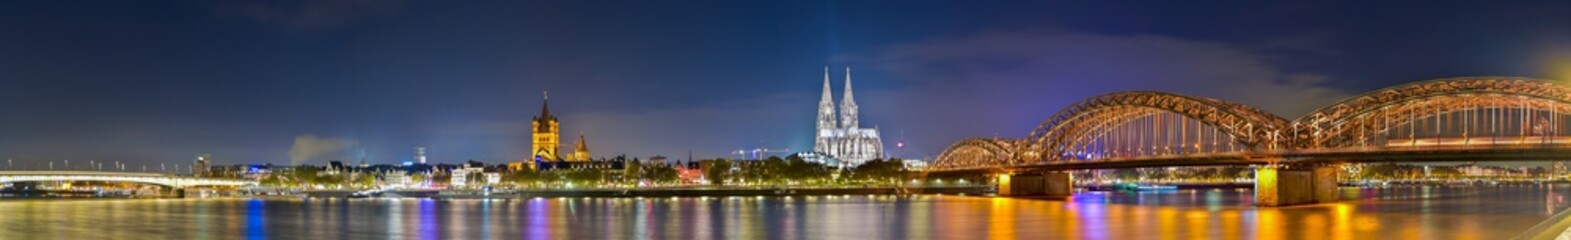 Panorama of cologne with the Hohenzollern Bridge over the Rhine River and Cologne Cathedral by night Fototapete